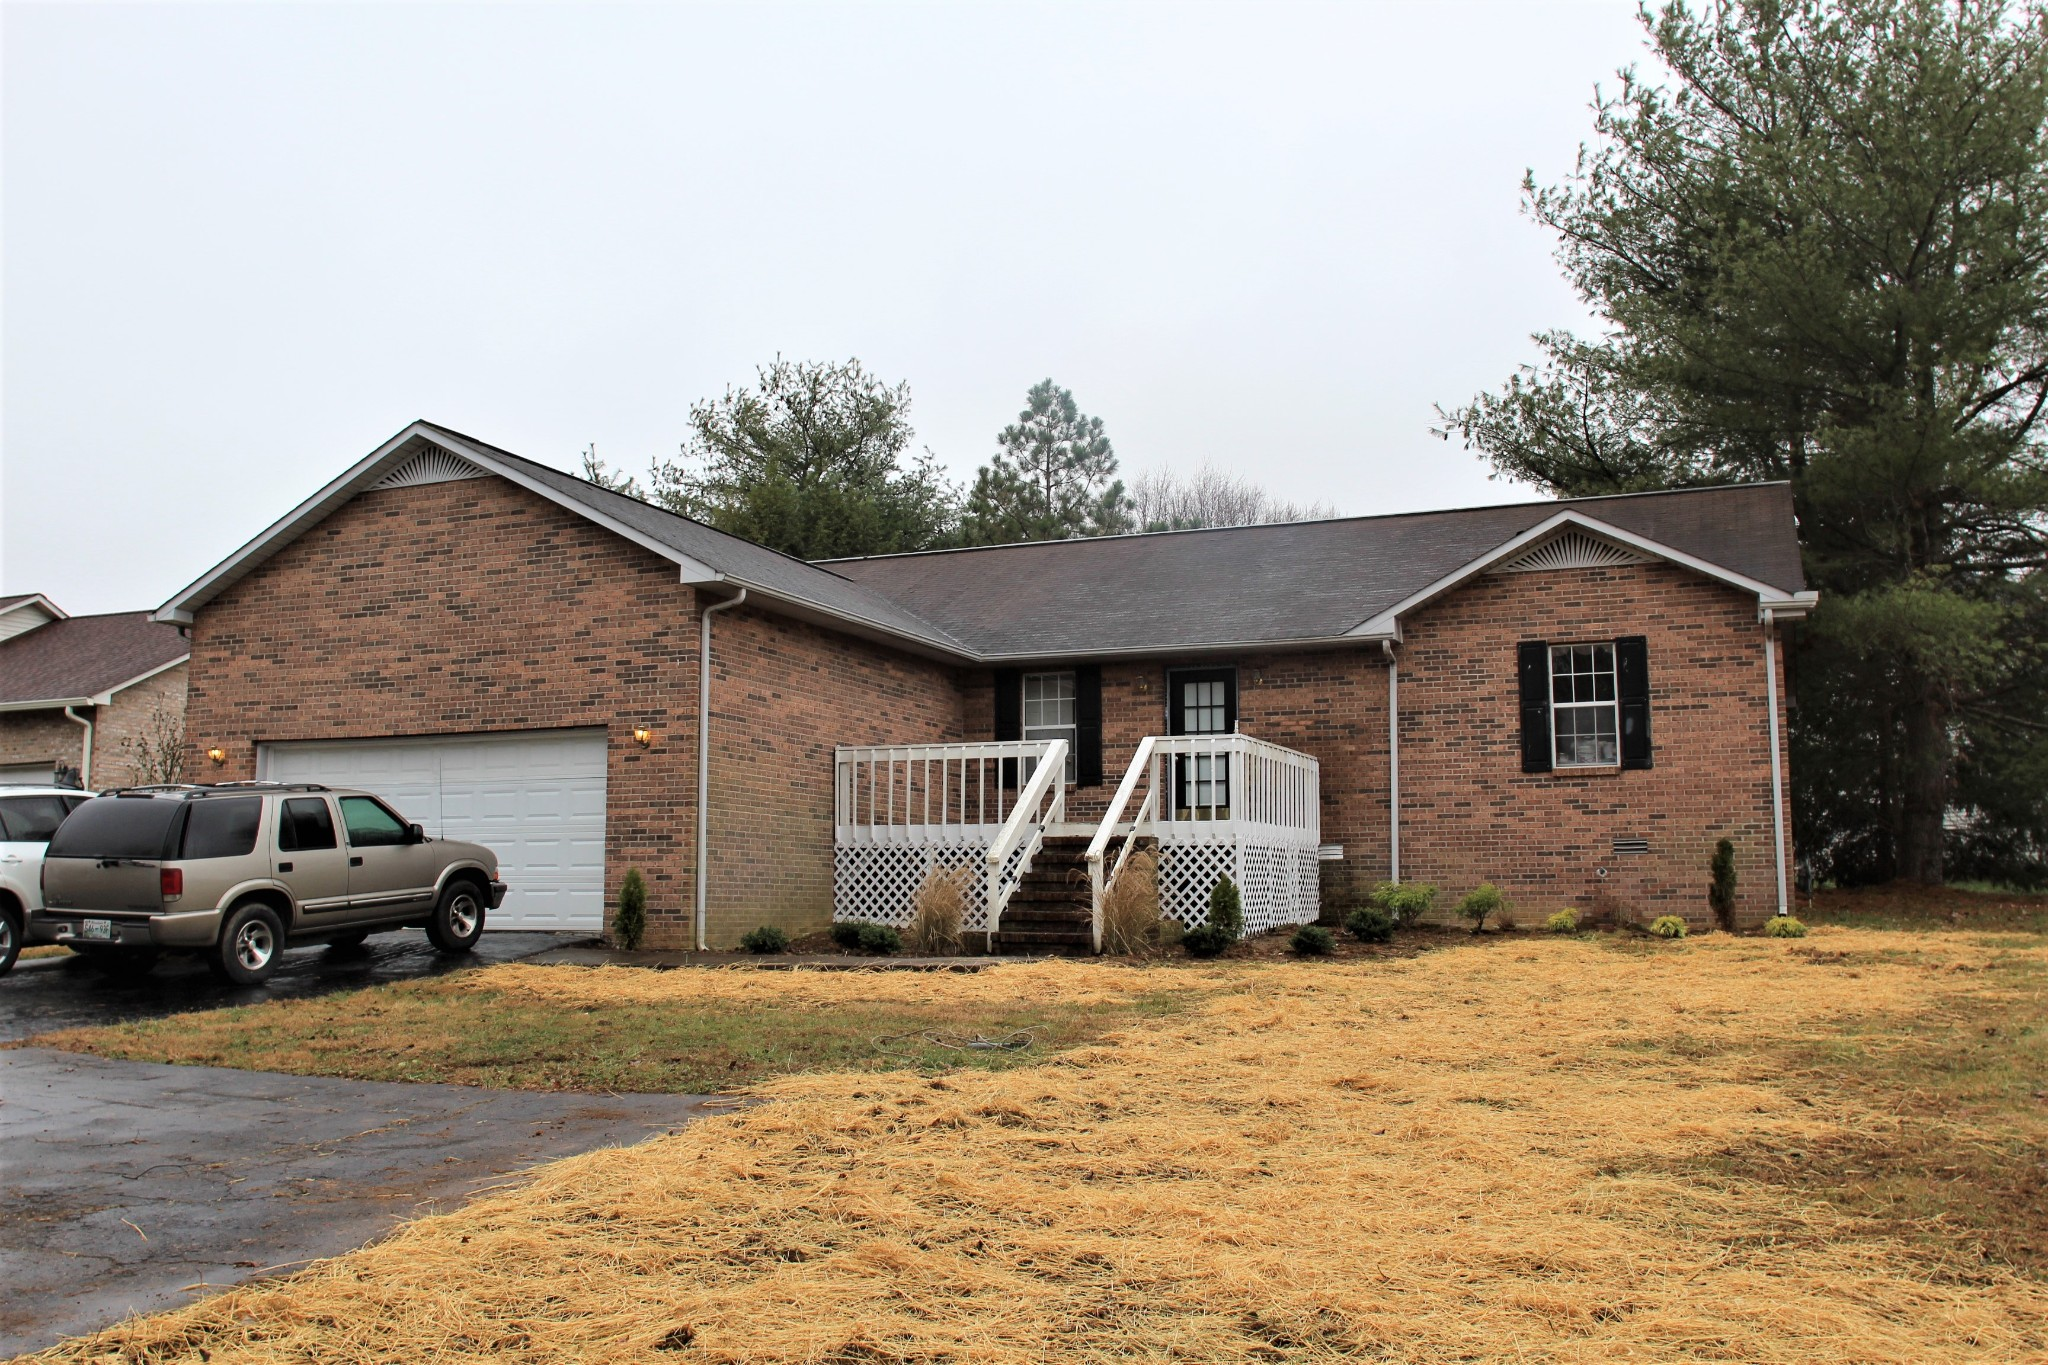 596 Old Qualls Rd, Cookeville, TN 38506 - Cookeville, TN real estate listing